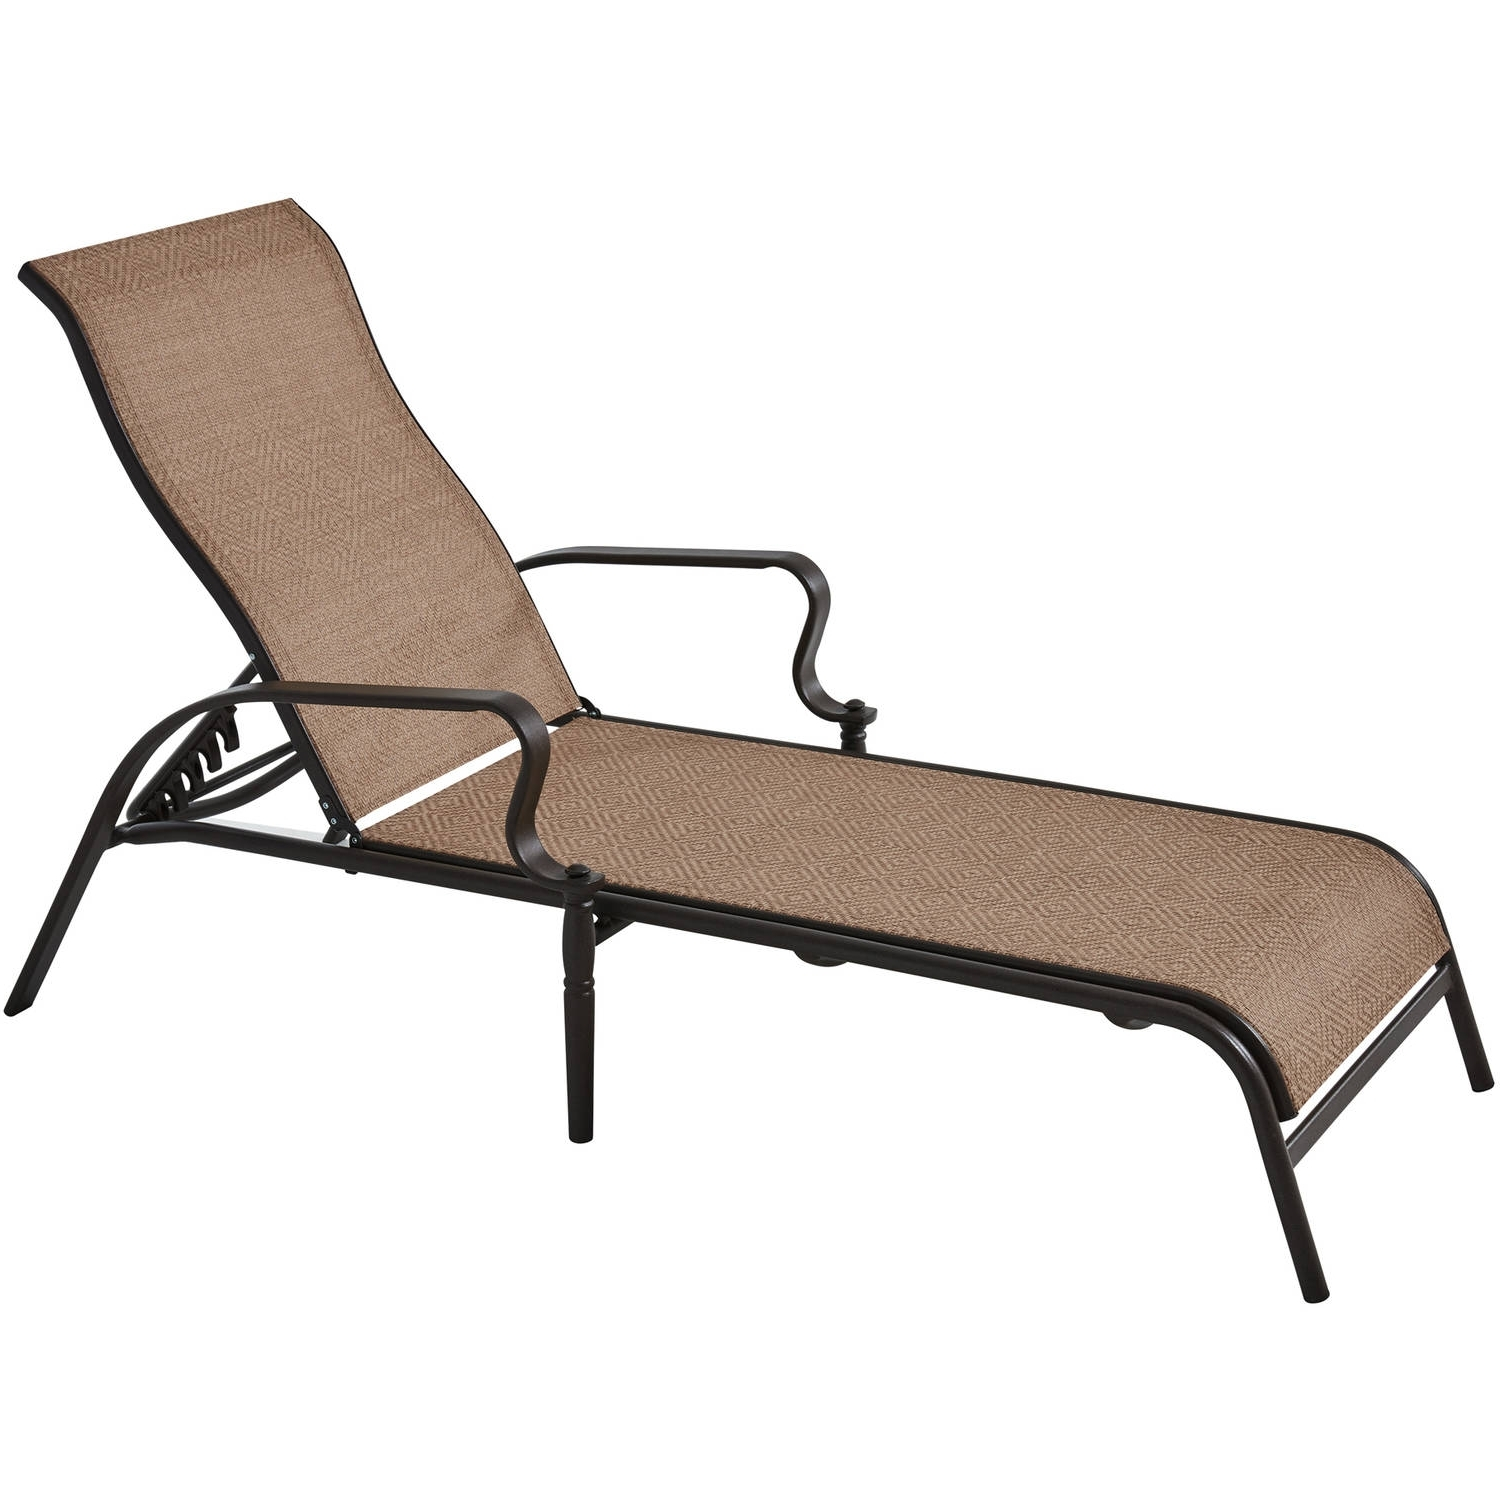 Sears Chaise Lounges With Widely Used Mainstays Wesley Creek Sling Outdoor Chaise Lounge – Walmart (View 4 of 15)